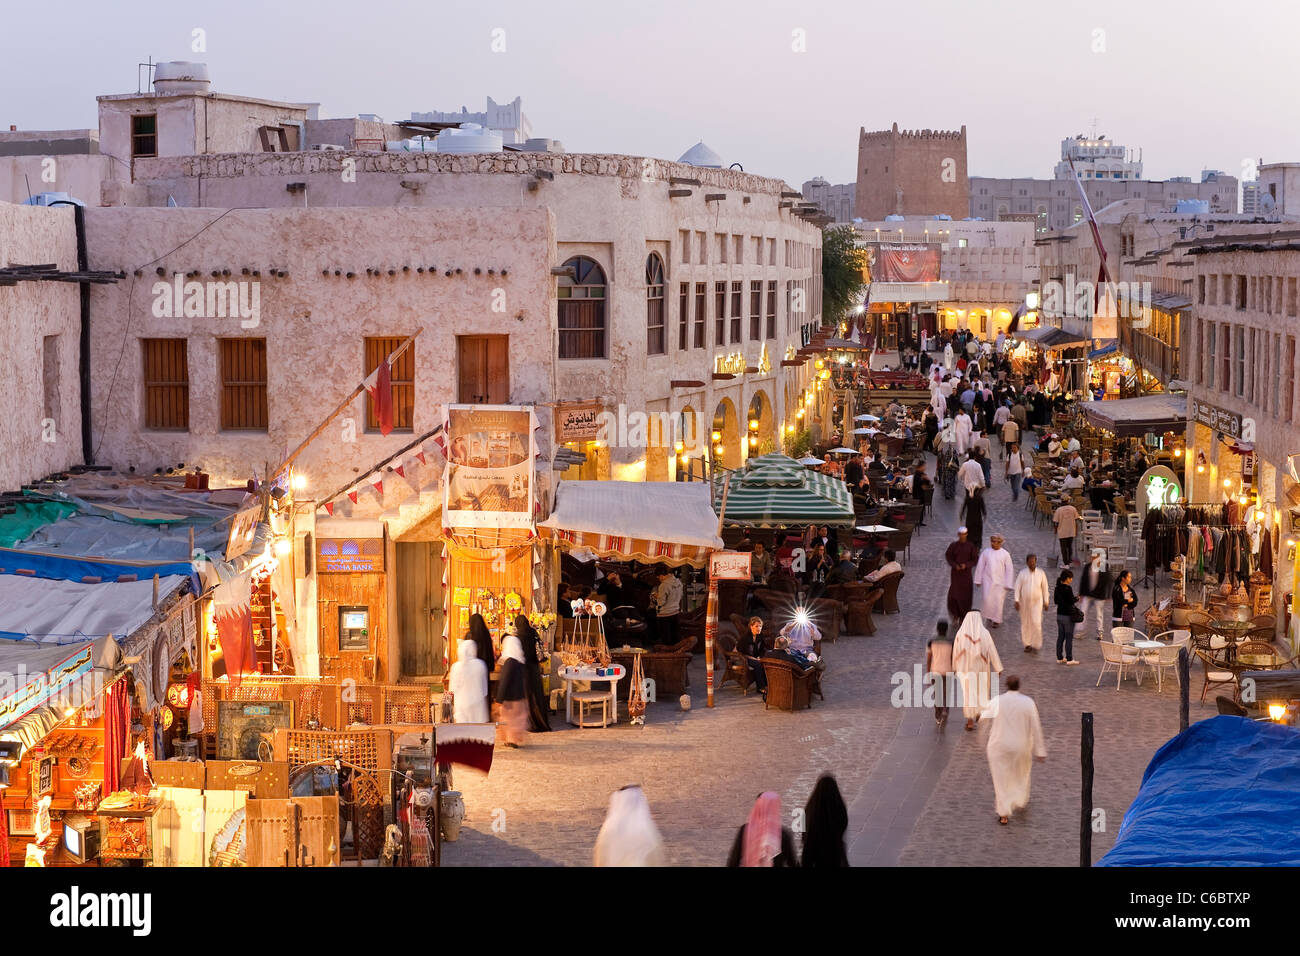 Qatar, Middle East, Arabian Peninsula, Doha, the restored Souq Waqif with mud rendered shops and exposed timber - Stock Image